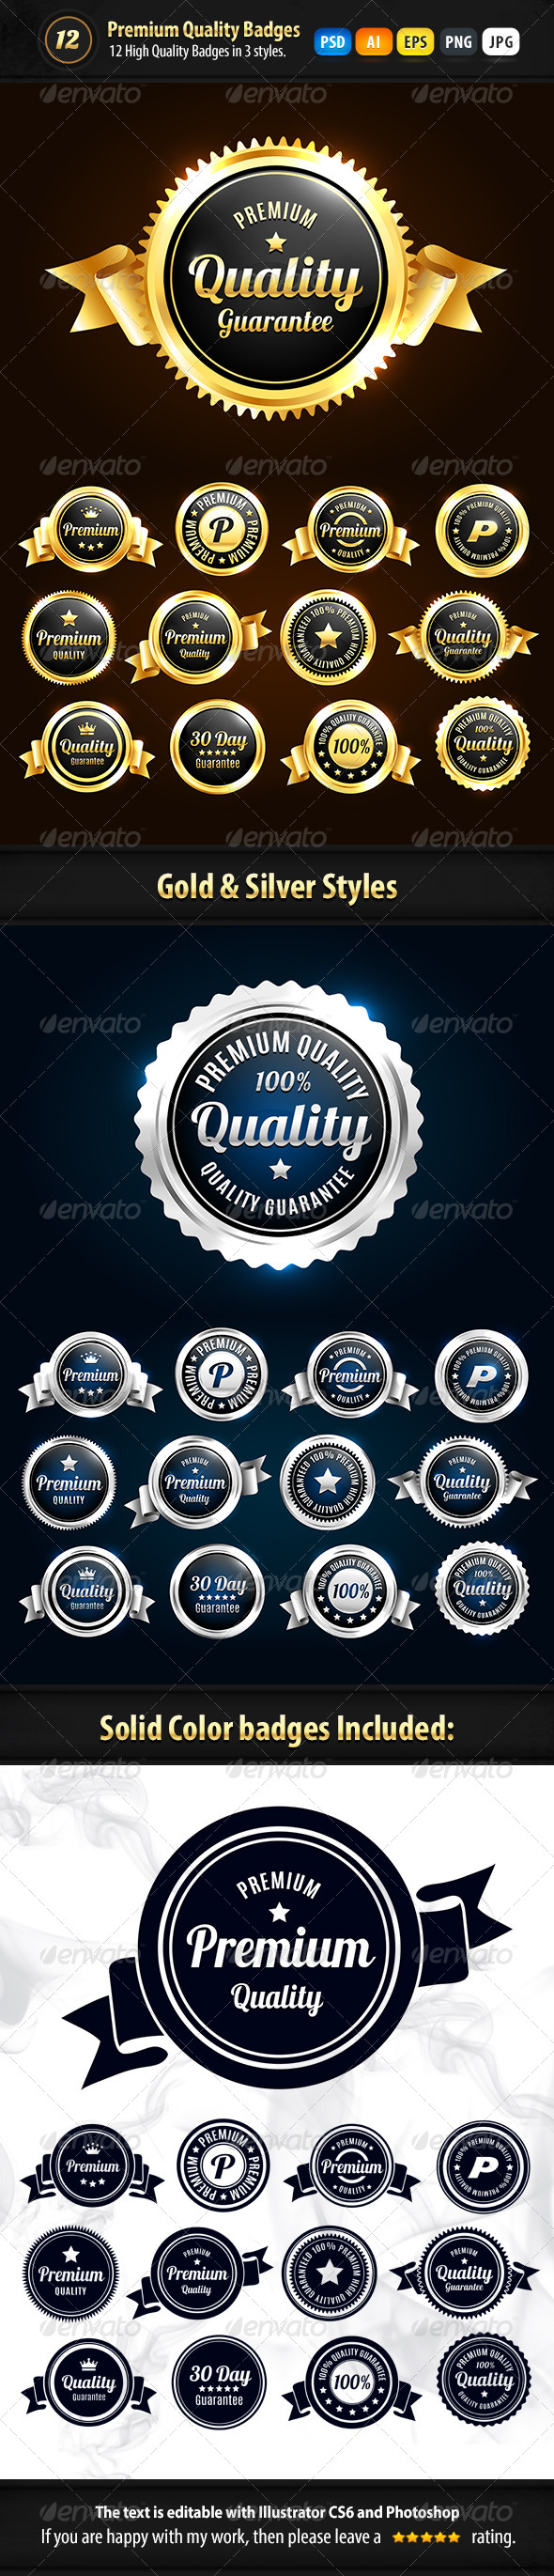 GraphicRiver 12 Premium Badges In 3 Styles 7263405